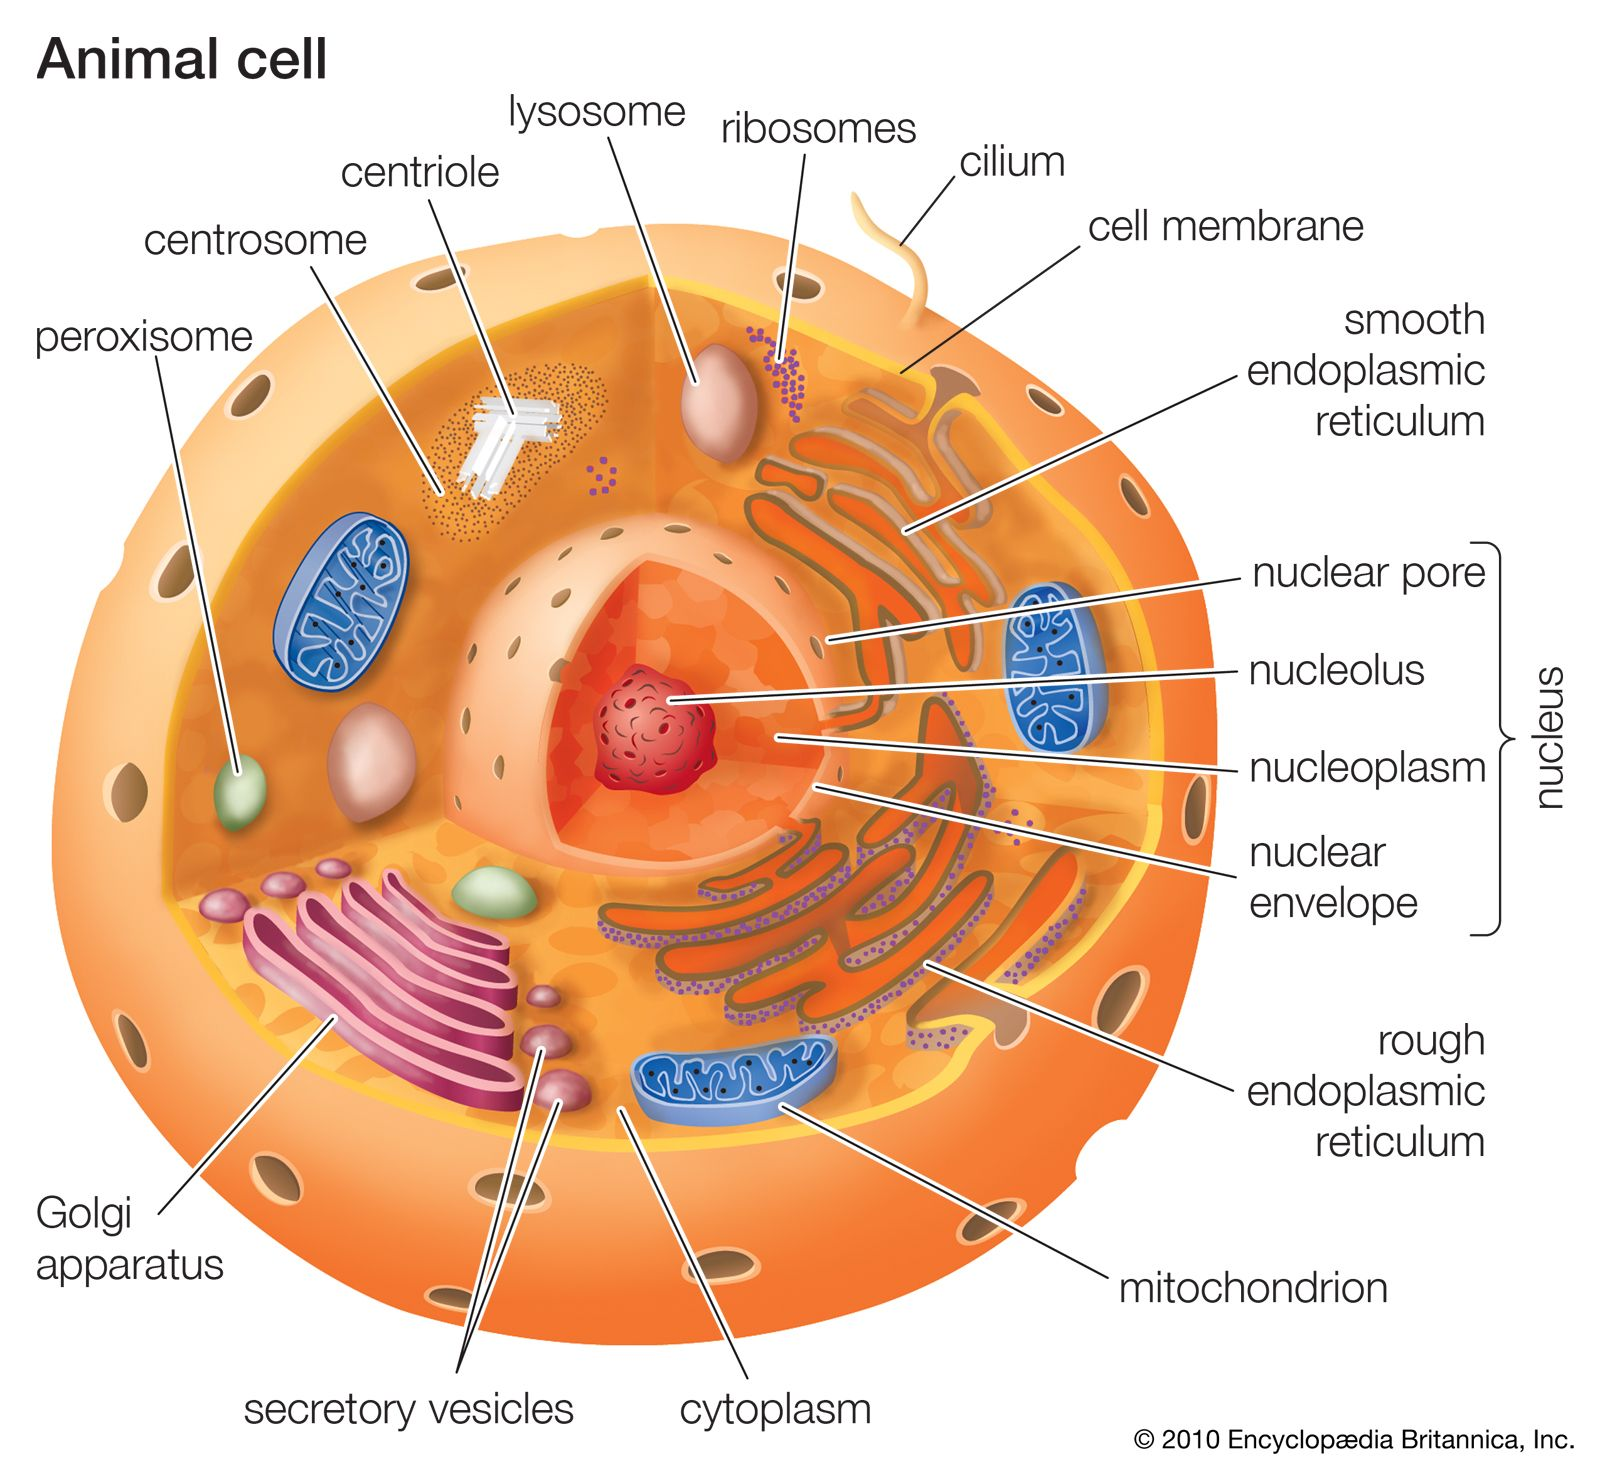 Animal cell biology pictures animal cell diagram weird science animal cell biology pictures animal cell diagram ccuart Images